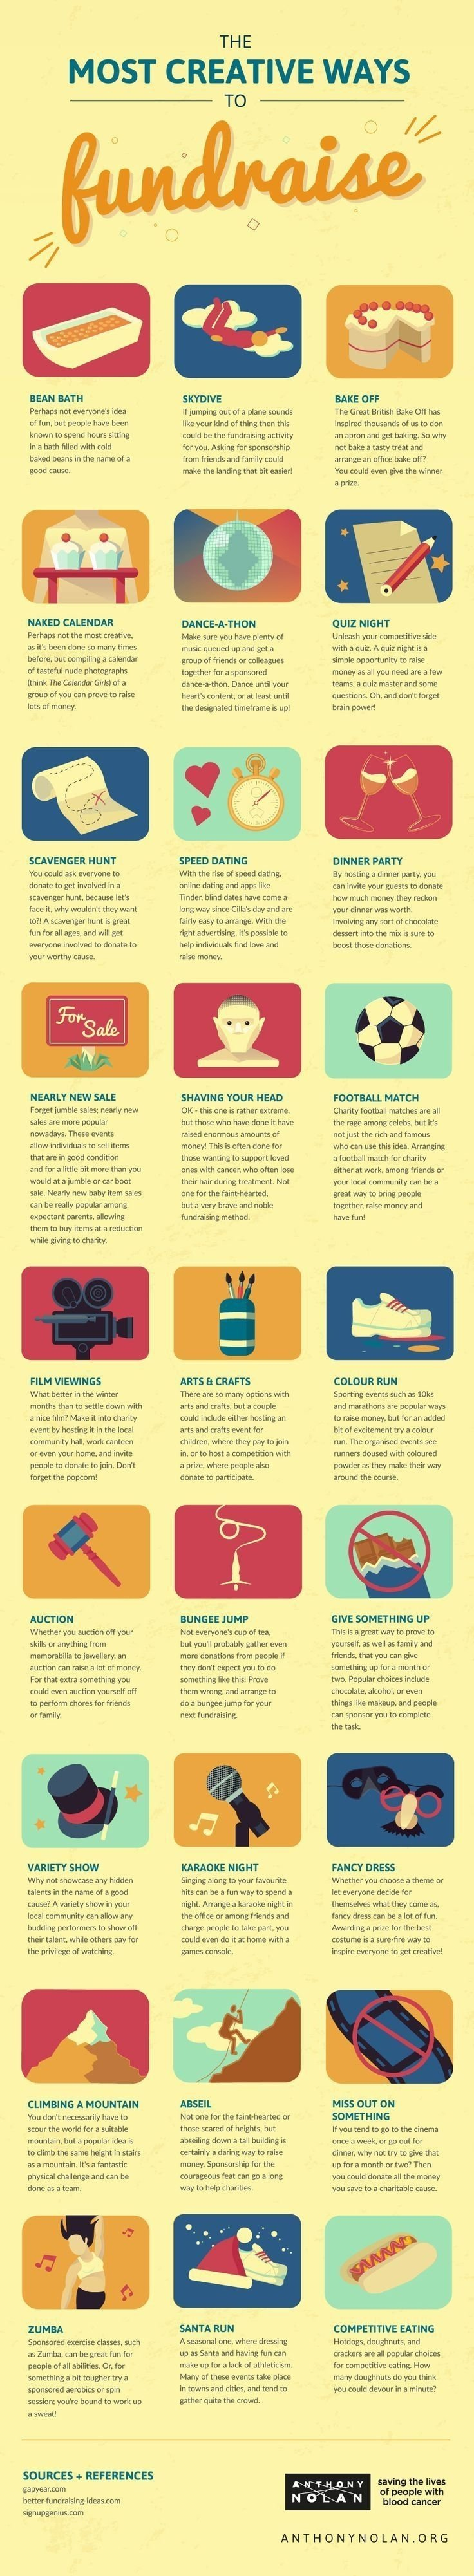 10 Attractive Creative Fundraising Ideas For Nonprofits 964 best nonprofits images on pinterest fundraising ideas 2 2020